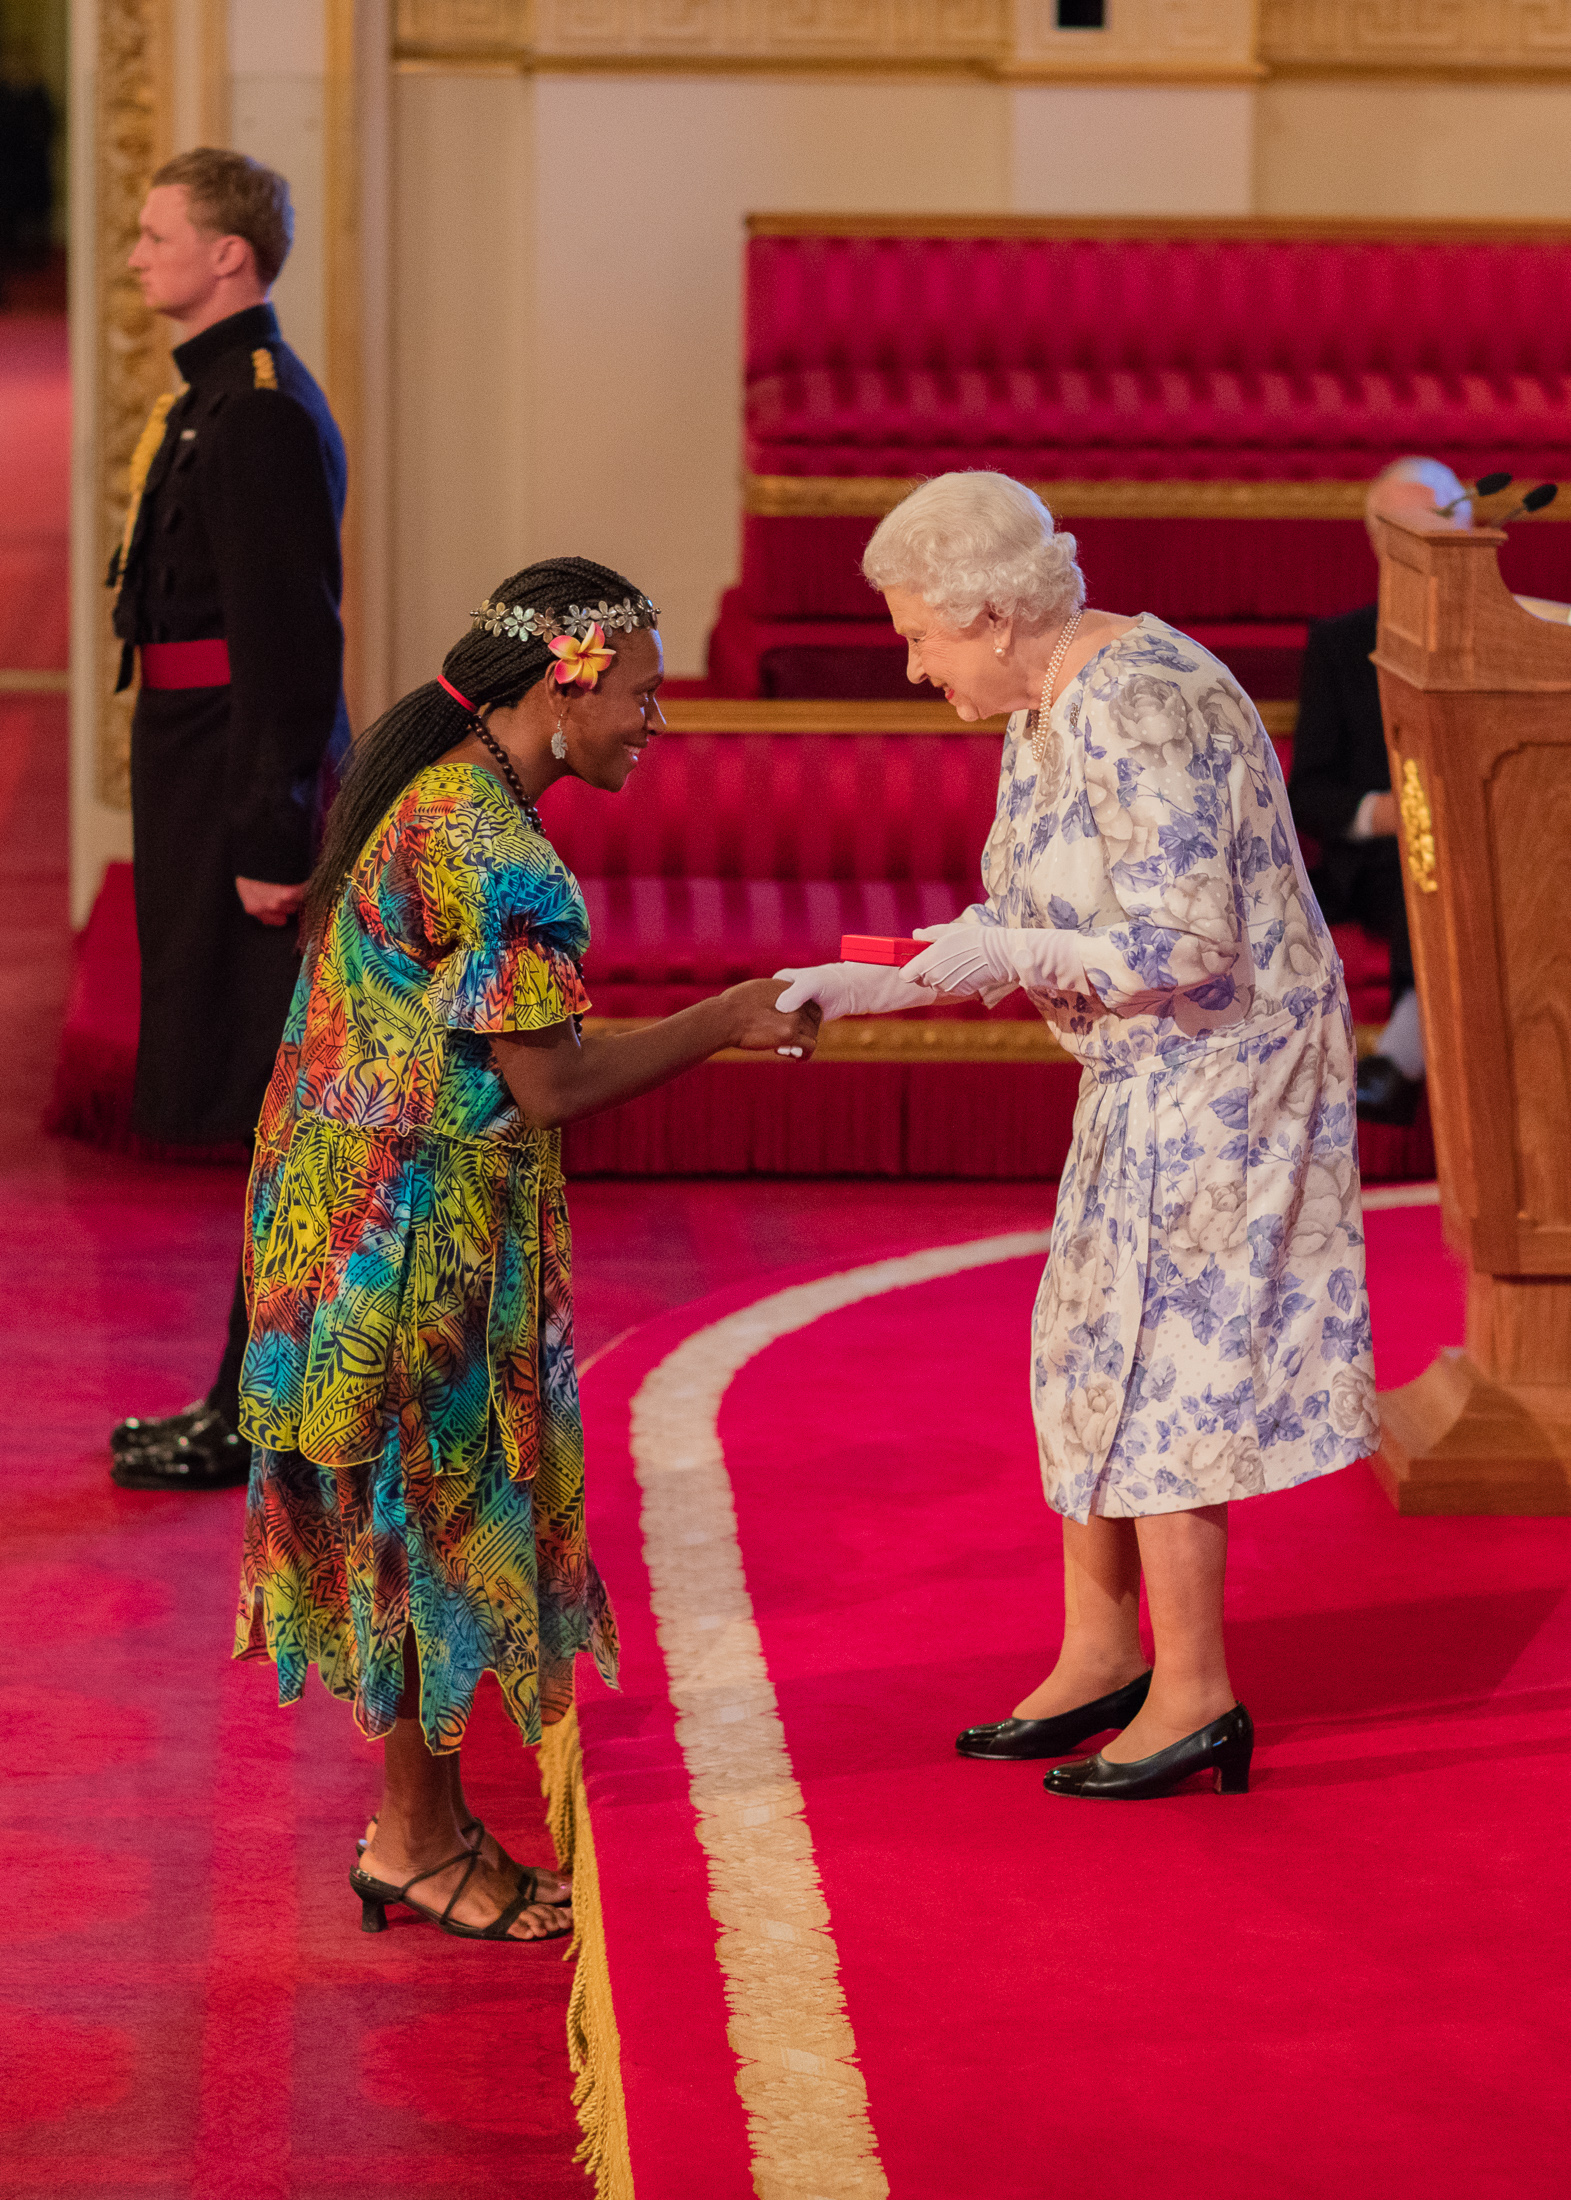 Mary Siro 2016 Queen's Young Leader from Vanuatu